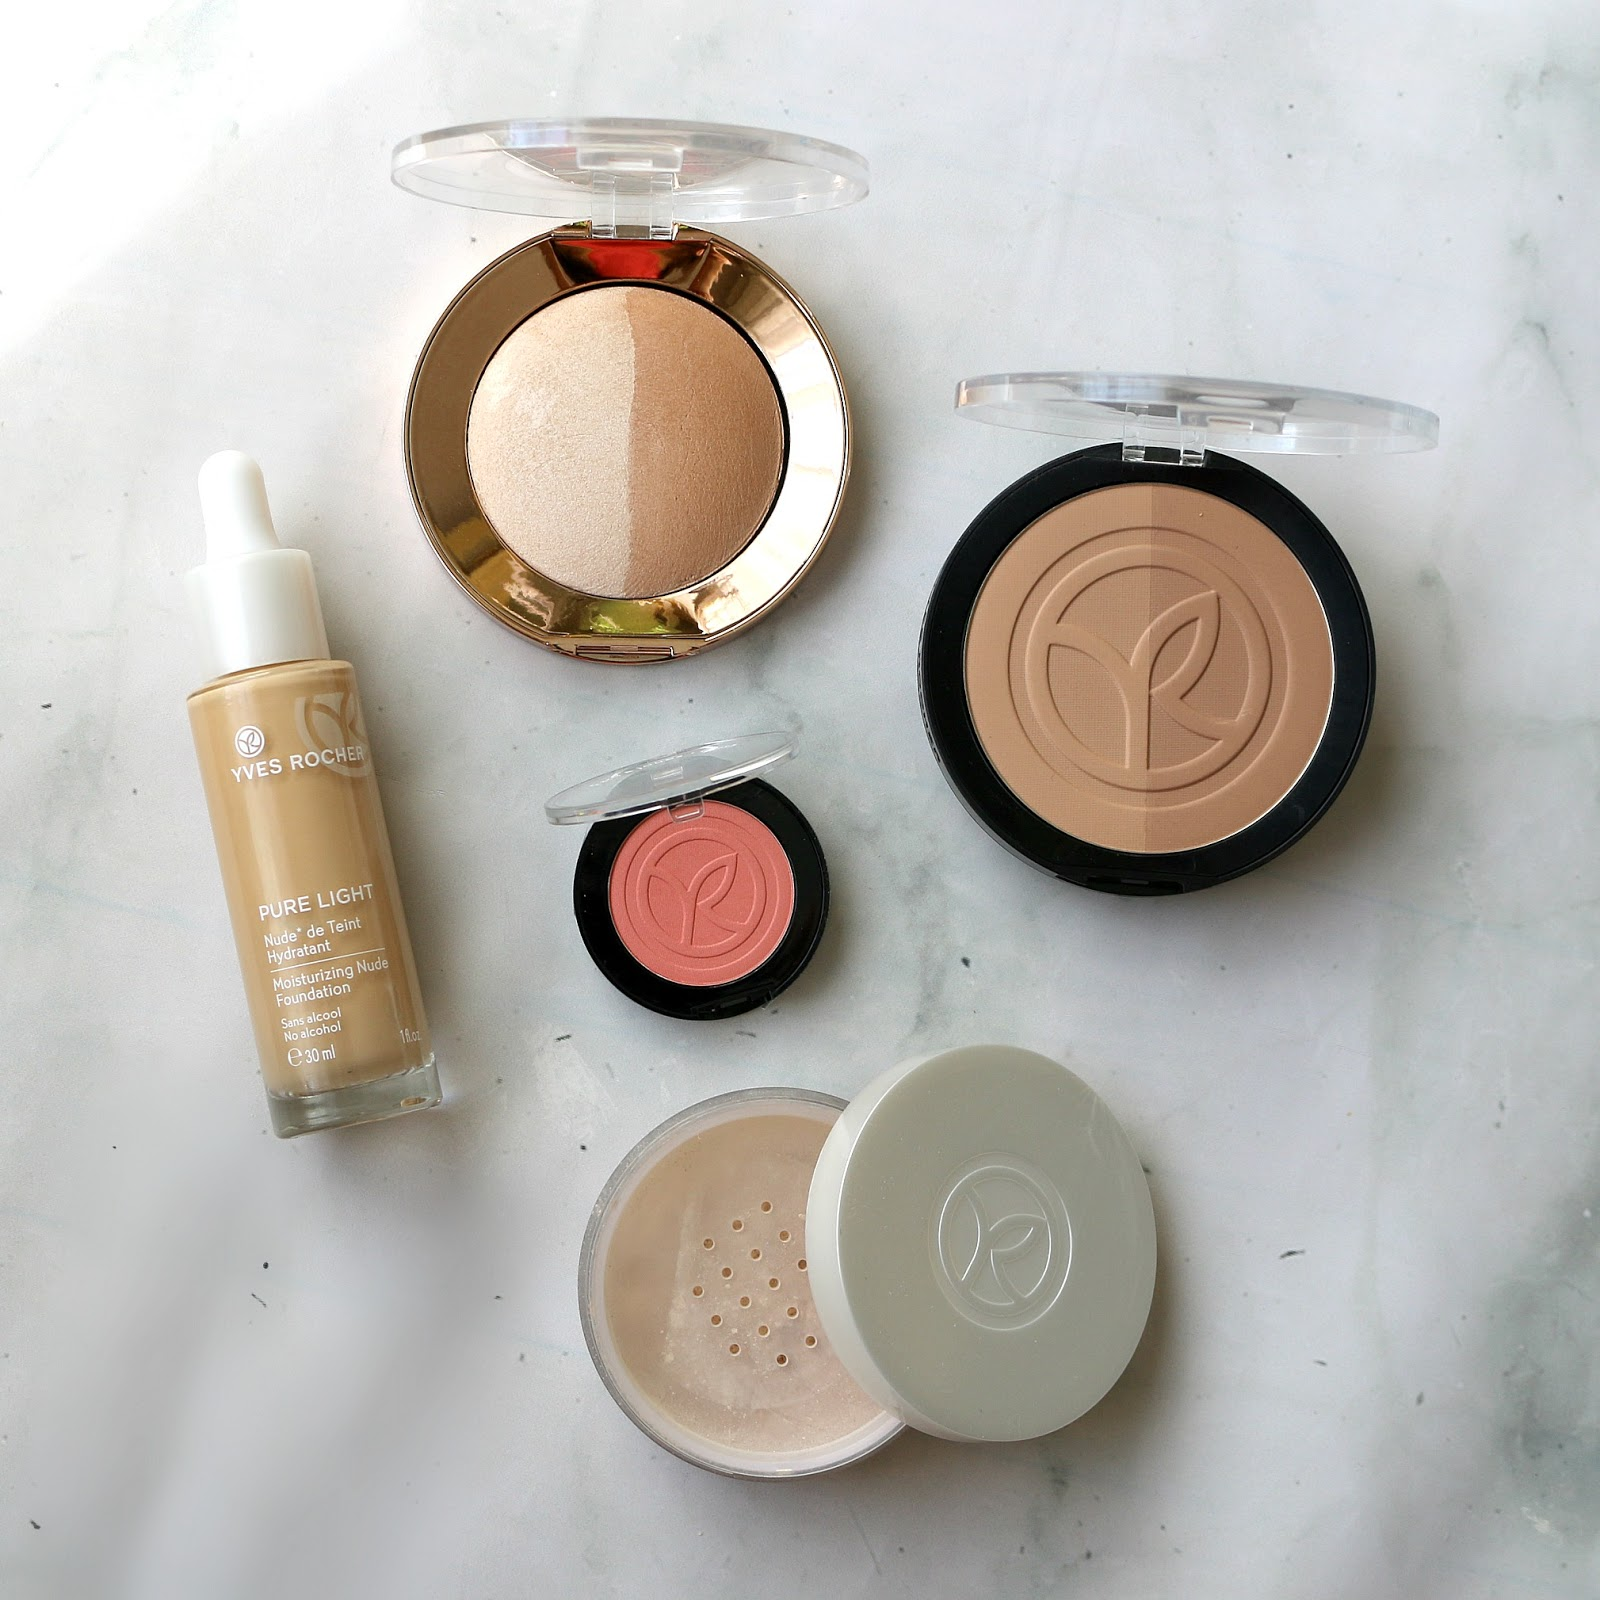 Yves Rocher Spring Makeup Look Face ProductsYves Rocher Spring Makeup Look Face Products Moisturizing Nude Foundation Light Luminous Loose Powder Bronzing Powder Duo Highlighter Duo Botanical Color Blush